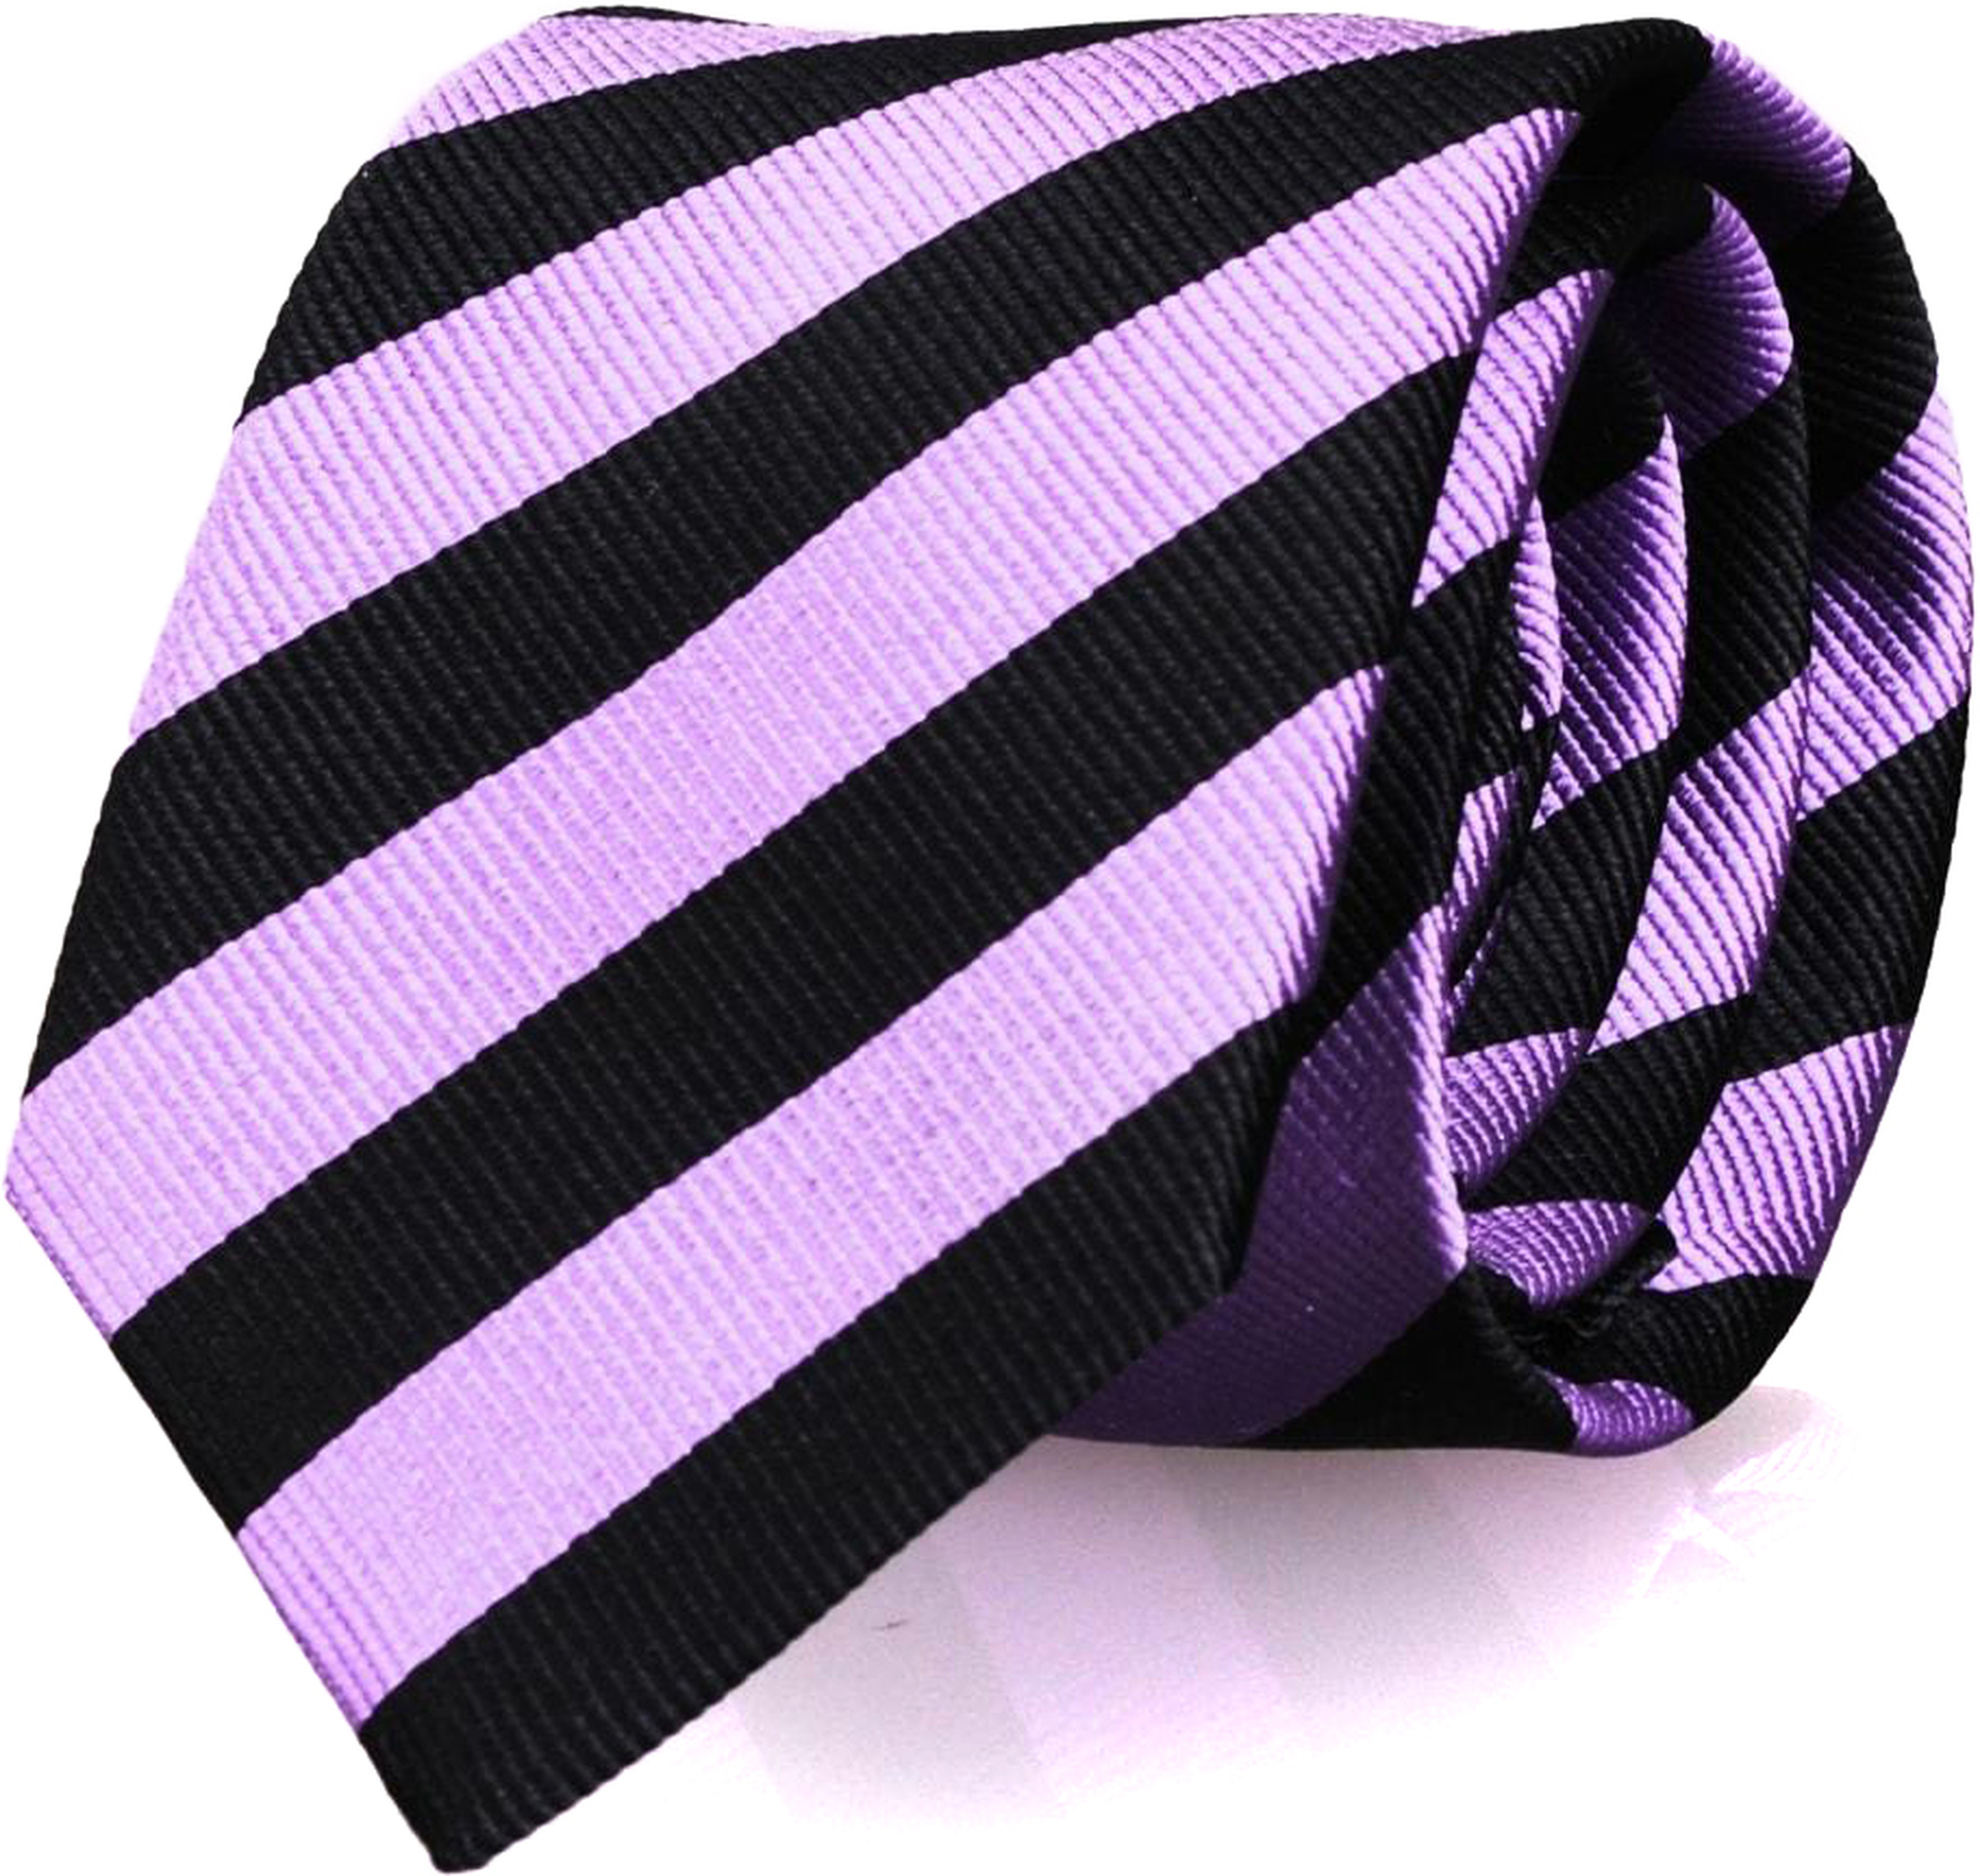 Silk Tie Lila + Black Striped FD19